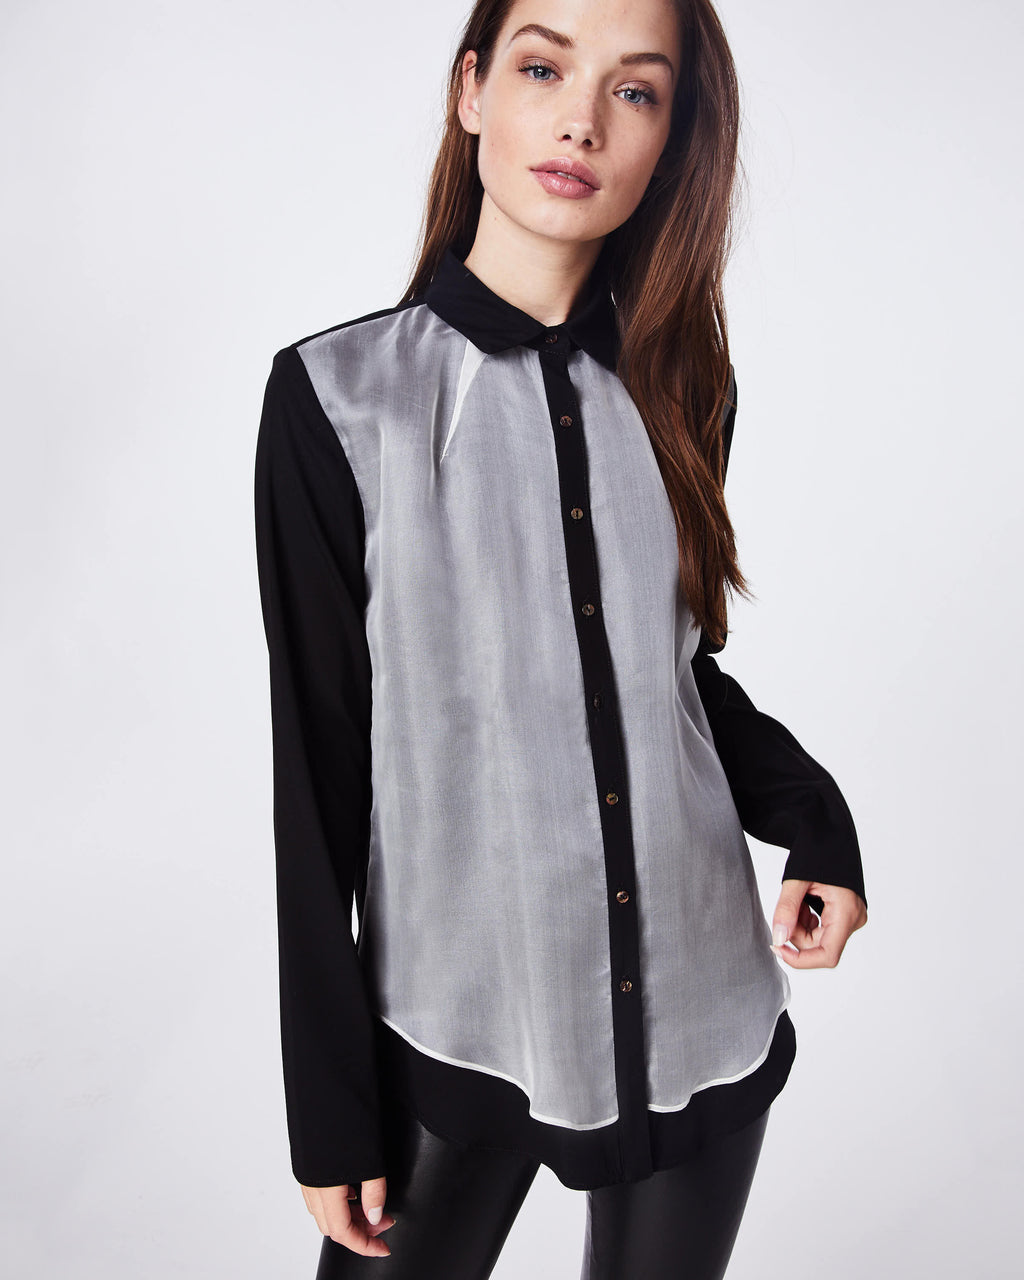 BH10427 - ORGANZA AND CHARMEUSE BLEND BOYFRIEND BLOUSE - tops - blouses - IN SHEER BLACK AND WHITE FABRIC, THIS TOP IS YOUR NEW GO TO WARDROBE STAPLE. WEAR IT ALONE OR AS A LAYERING PIECE.